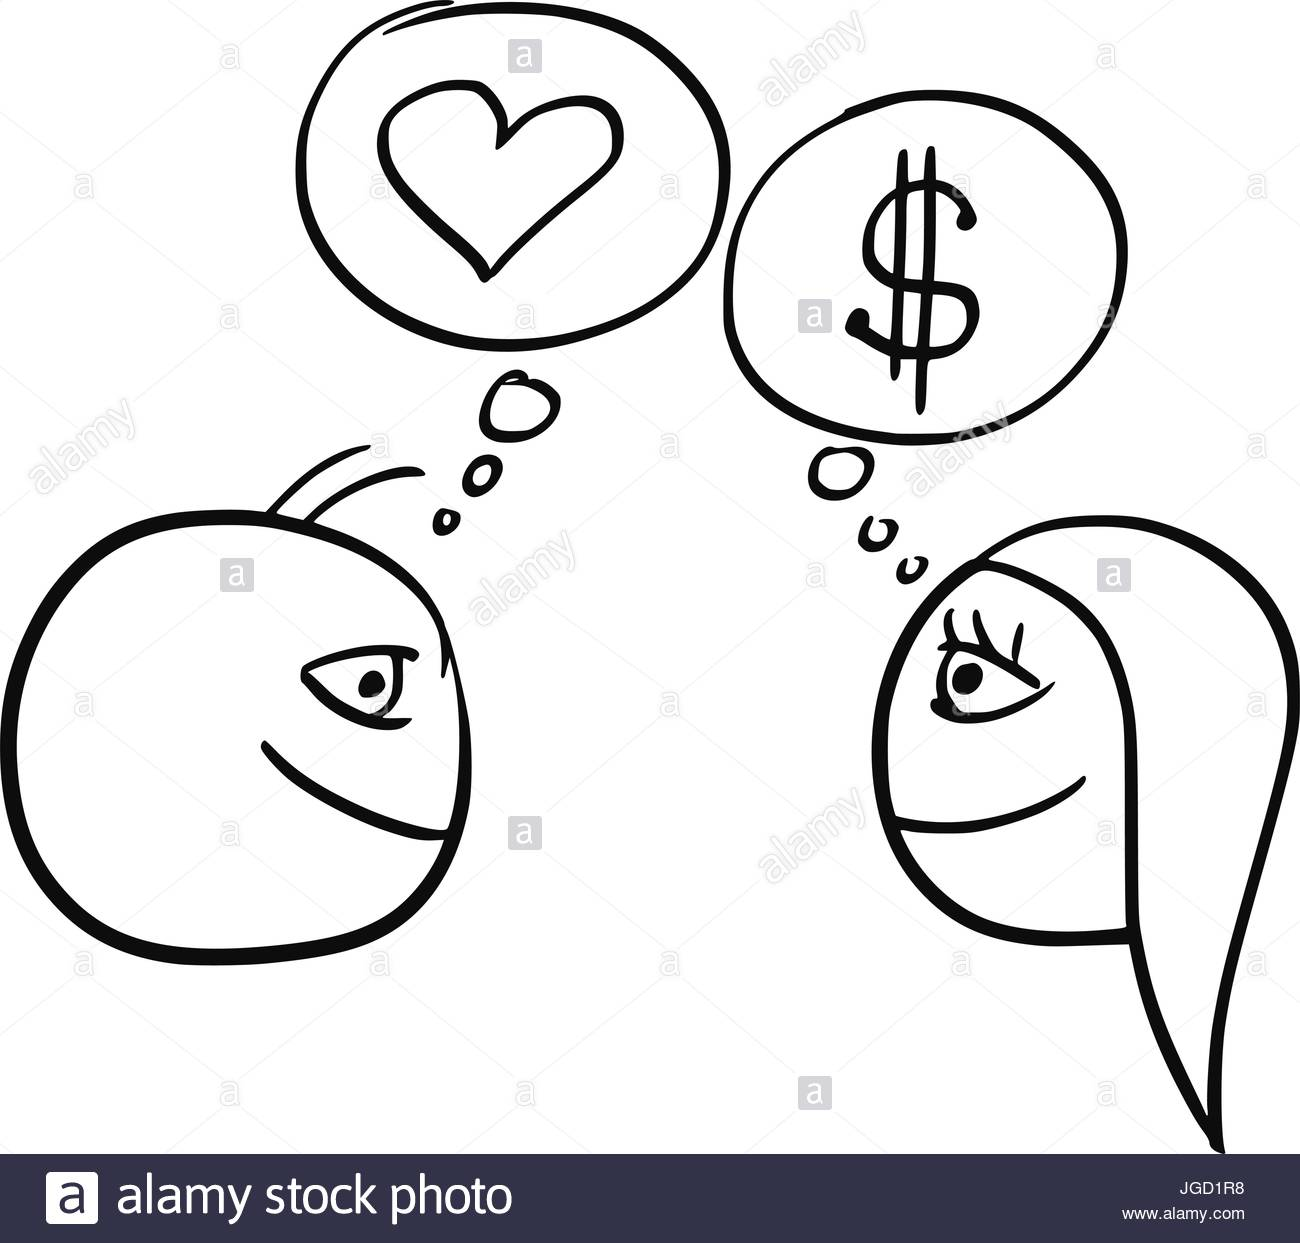 1300x1243 Cartoon Vector Of Difference Between Man And Woman Thinking About